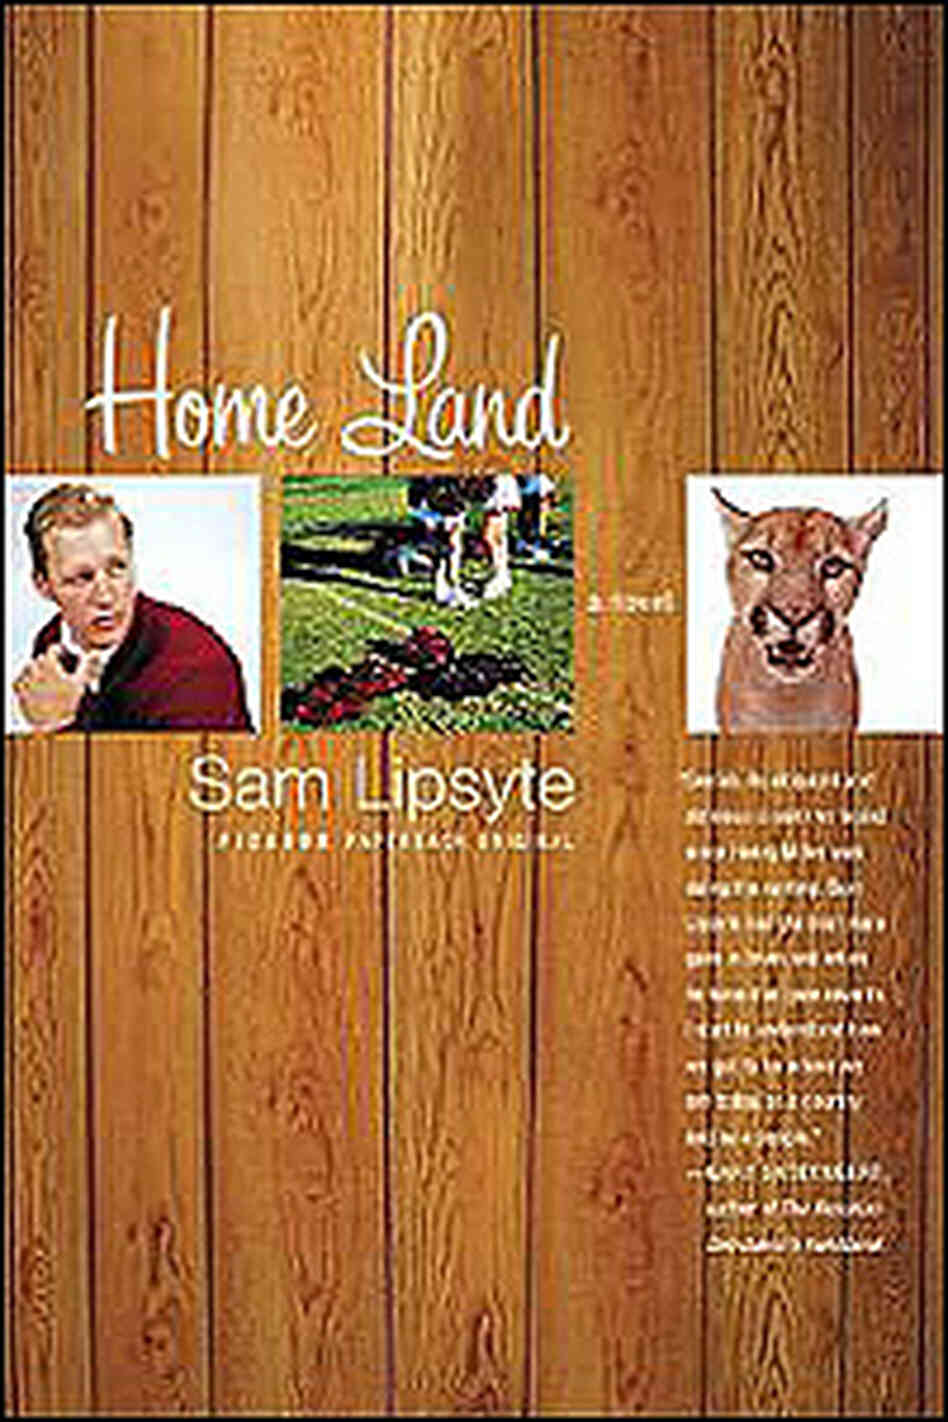 Cover of Home Land, a novel by Sam Lipsyte.